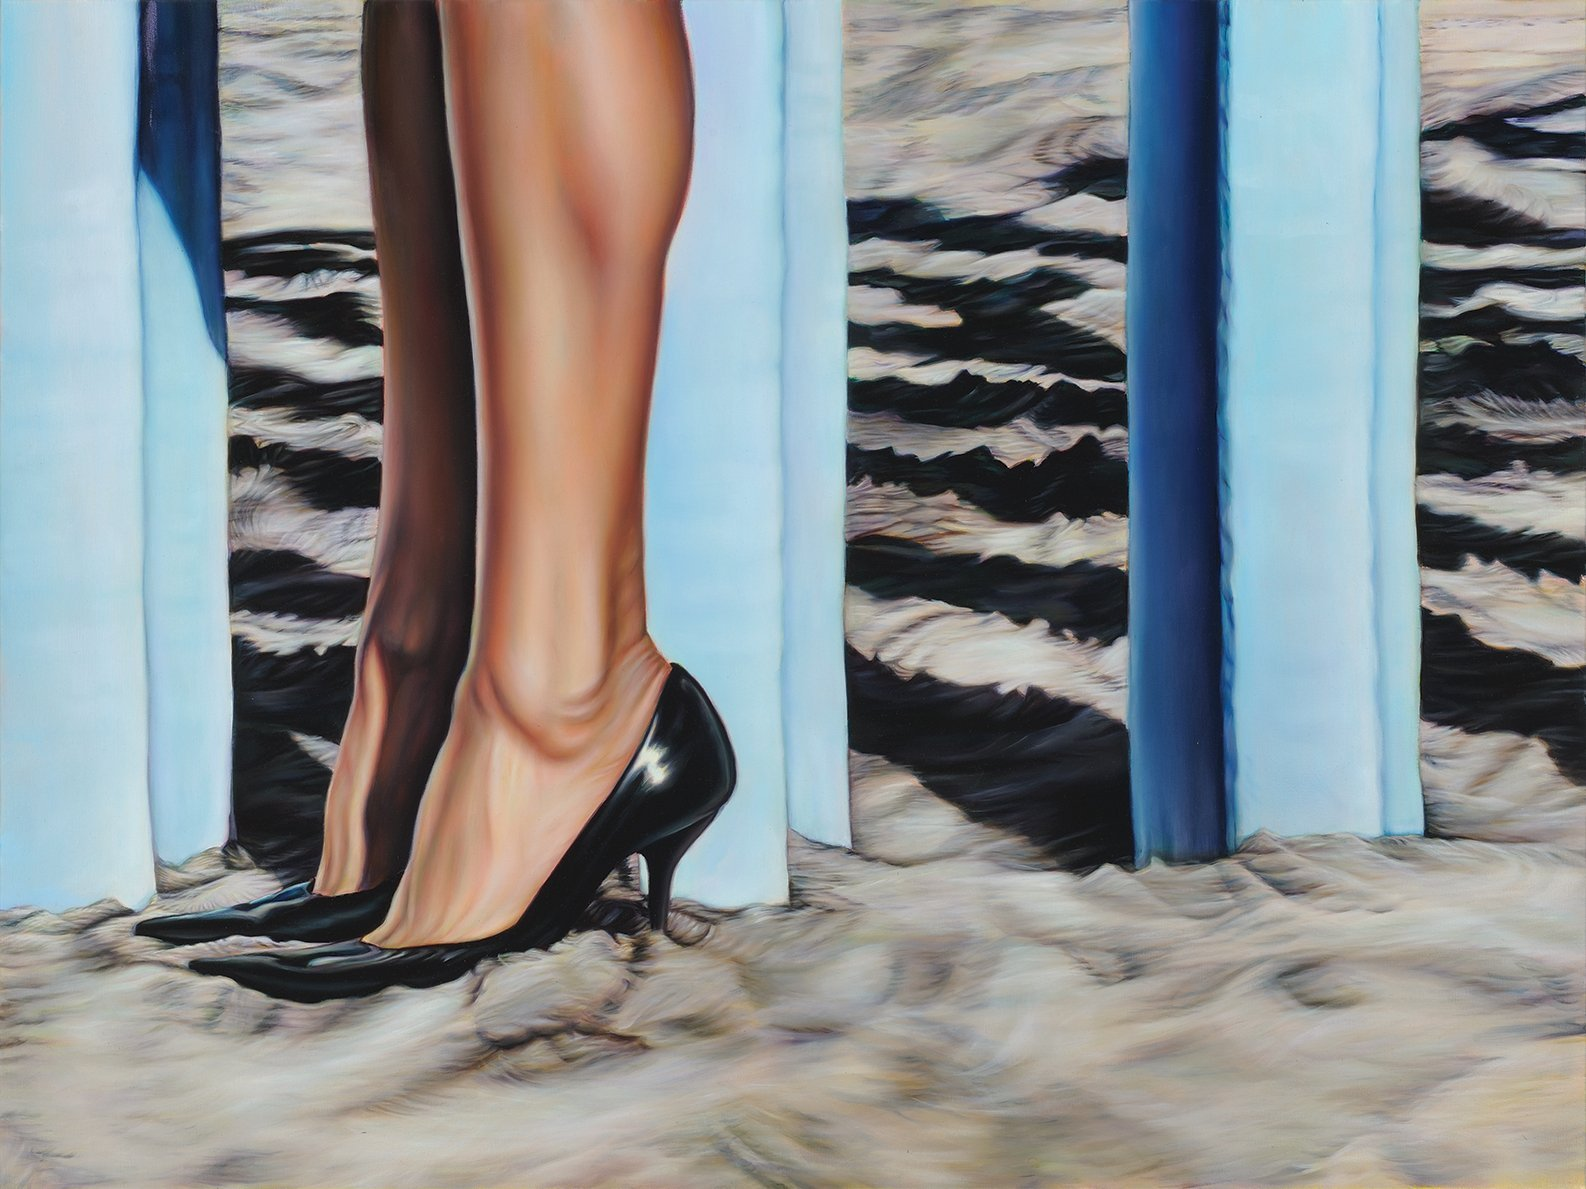 Close-up painting of a woman's legs and feet in black heels, standing in the sand next to the Mexican-American border fence